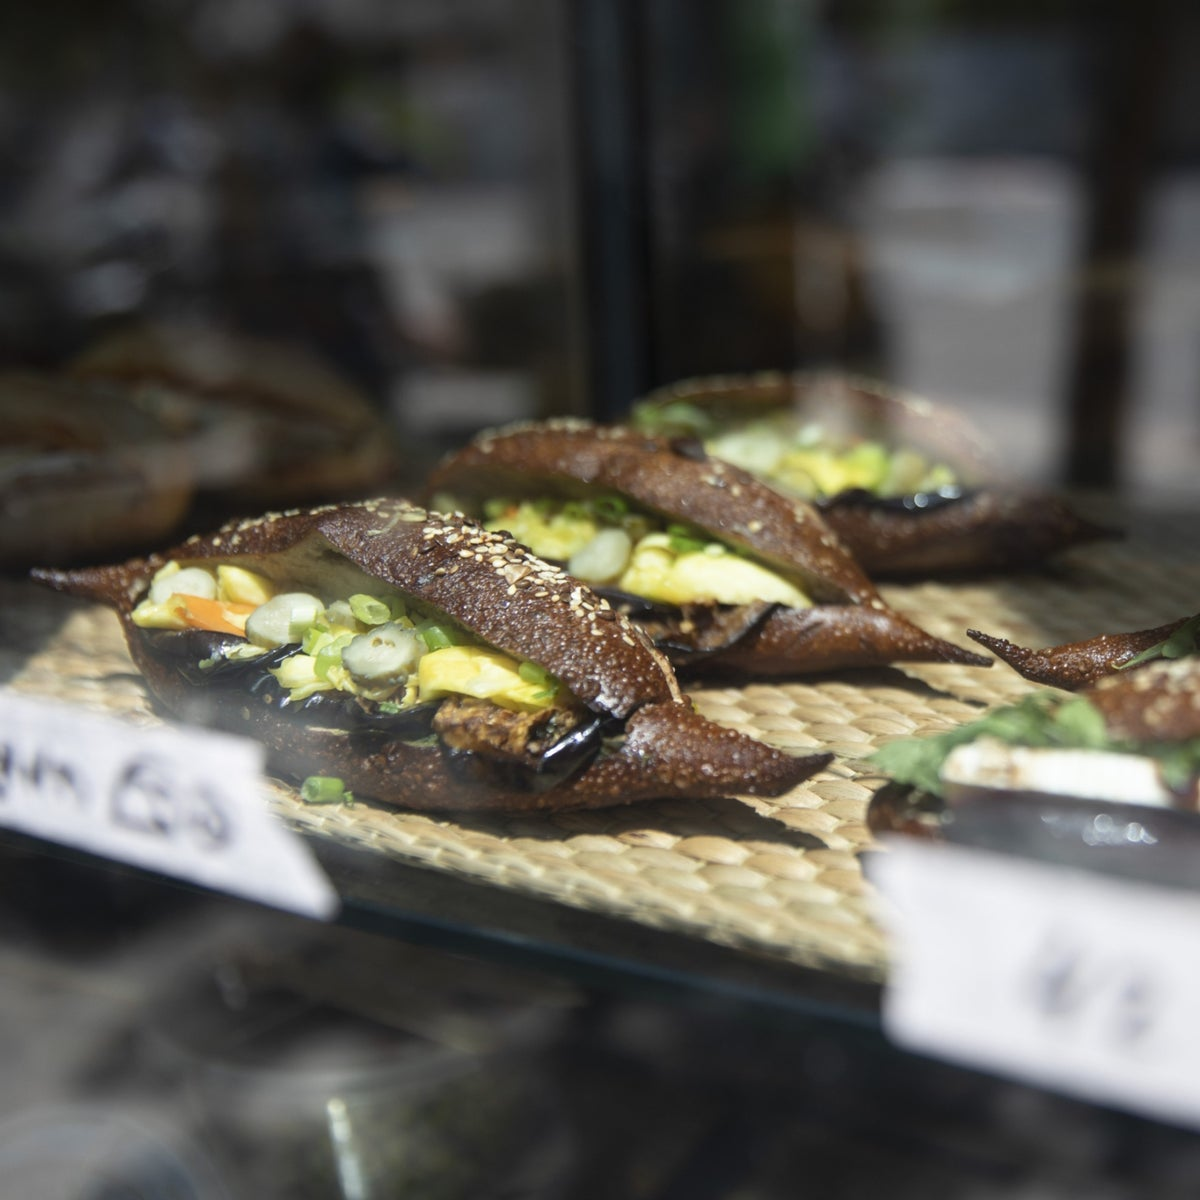 Sandwiches on display at Nordinyo, Tel Aviv, August 15, 2019.